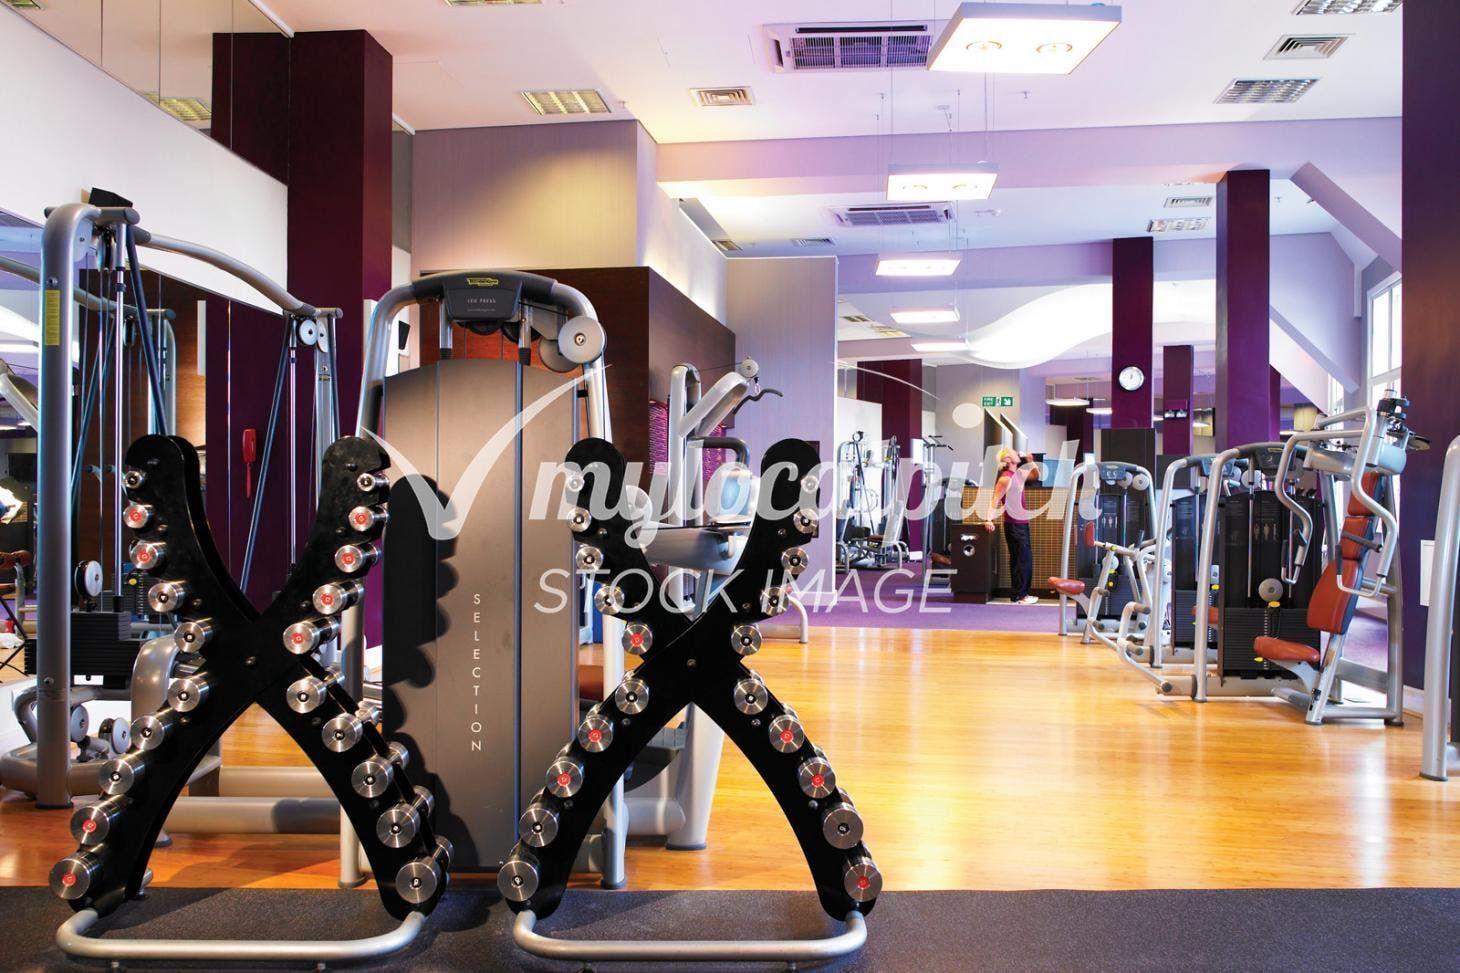 The Bridge Leisure Centre Gym gym